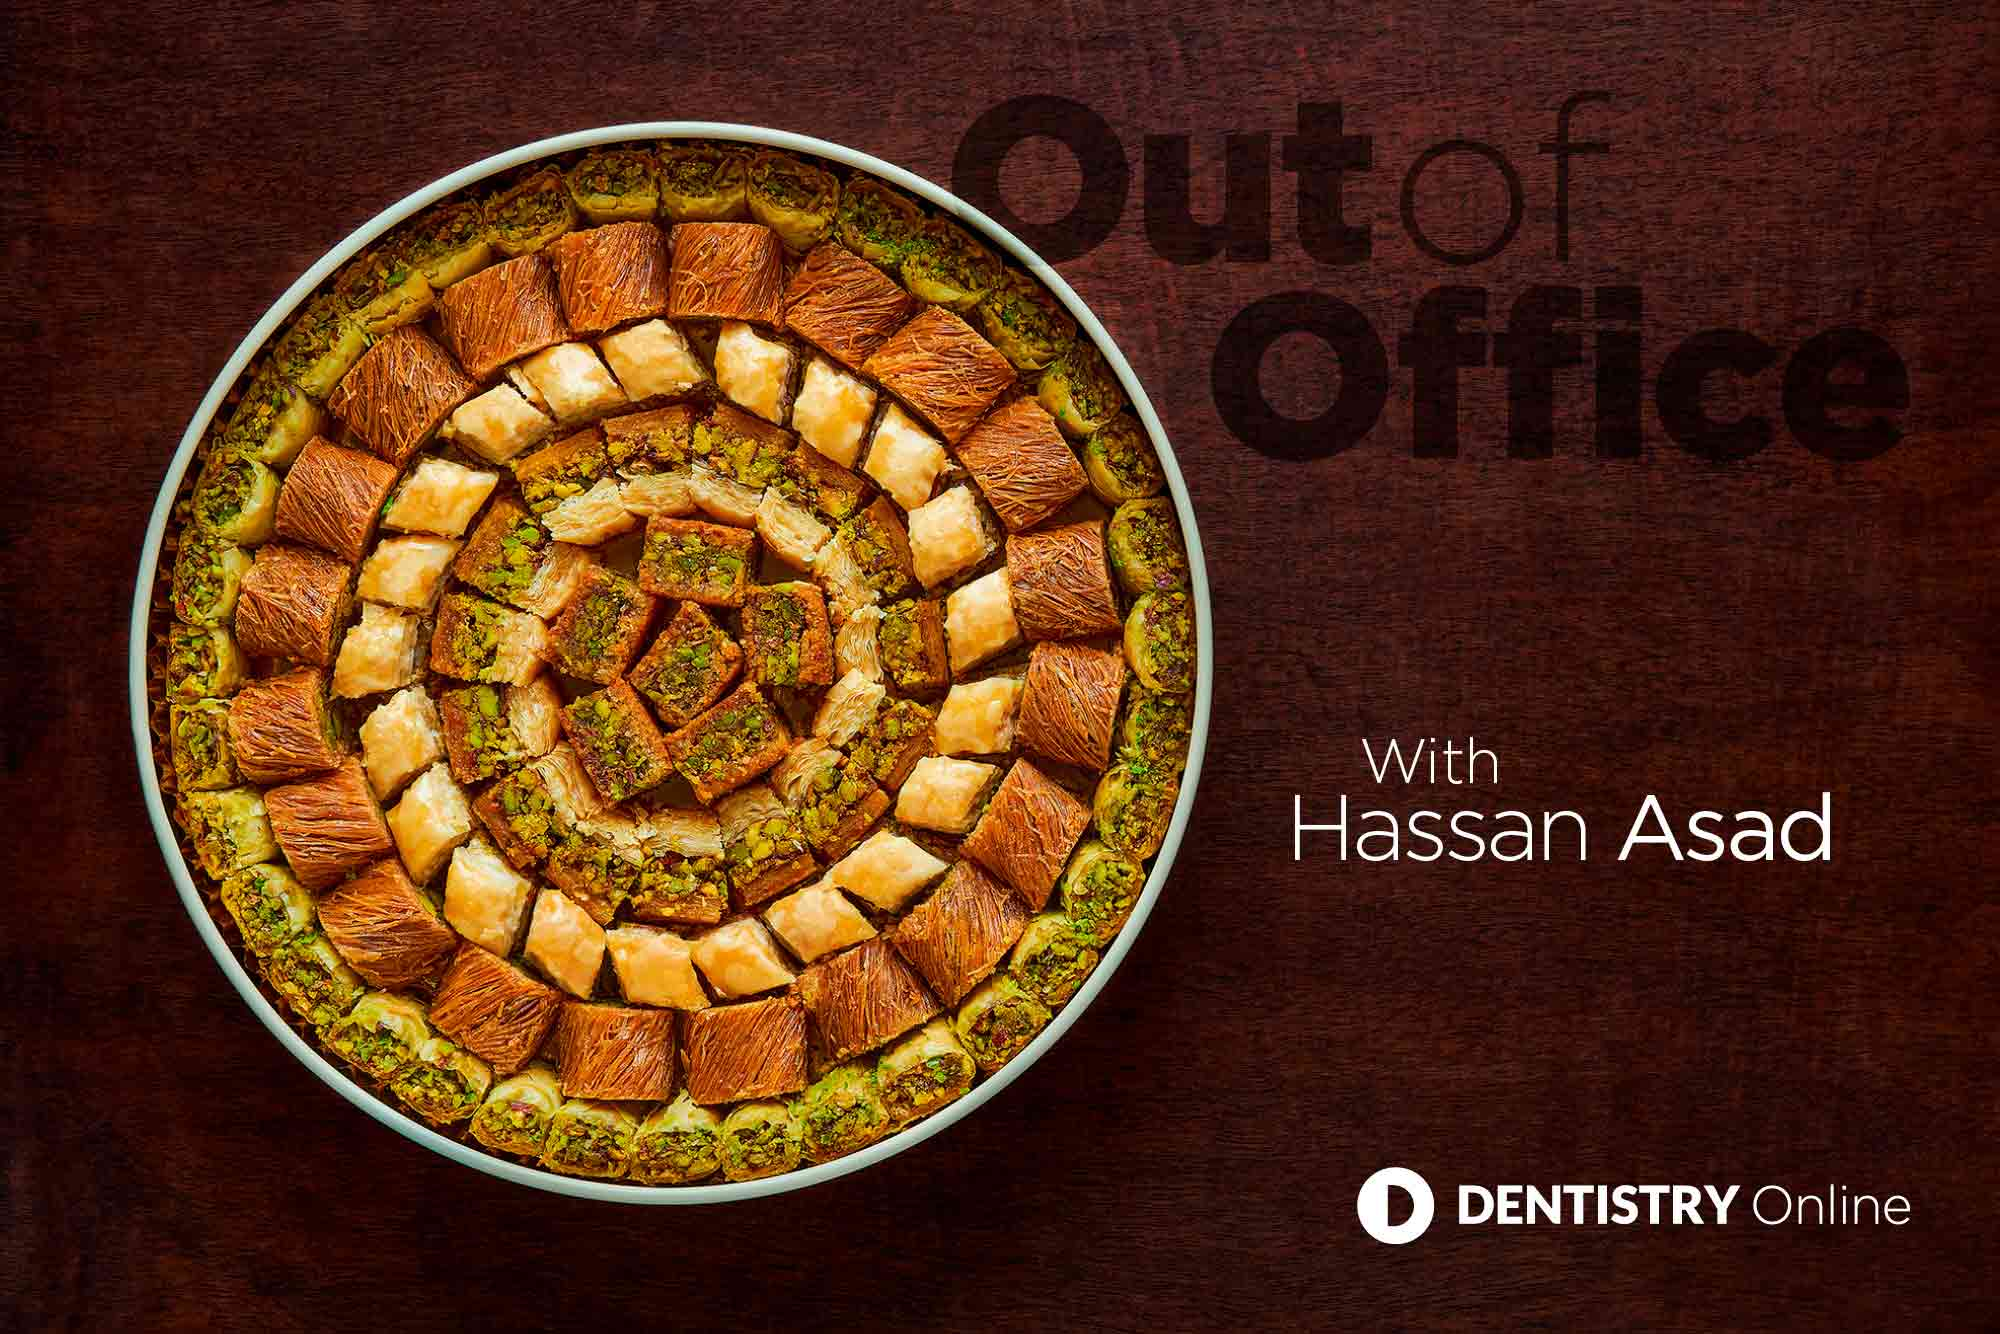 Out of office – Hassan Asad on his love for Game of Thrones and baklawa